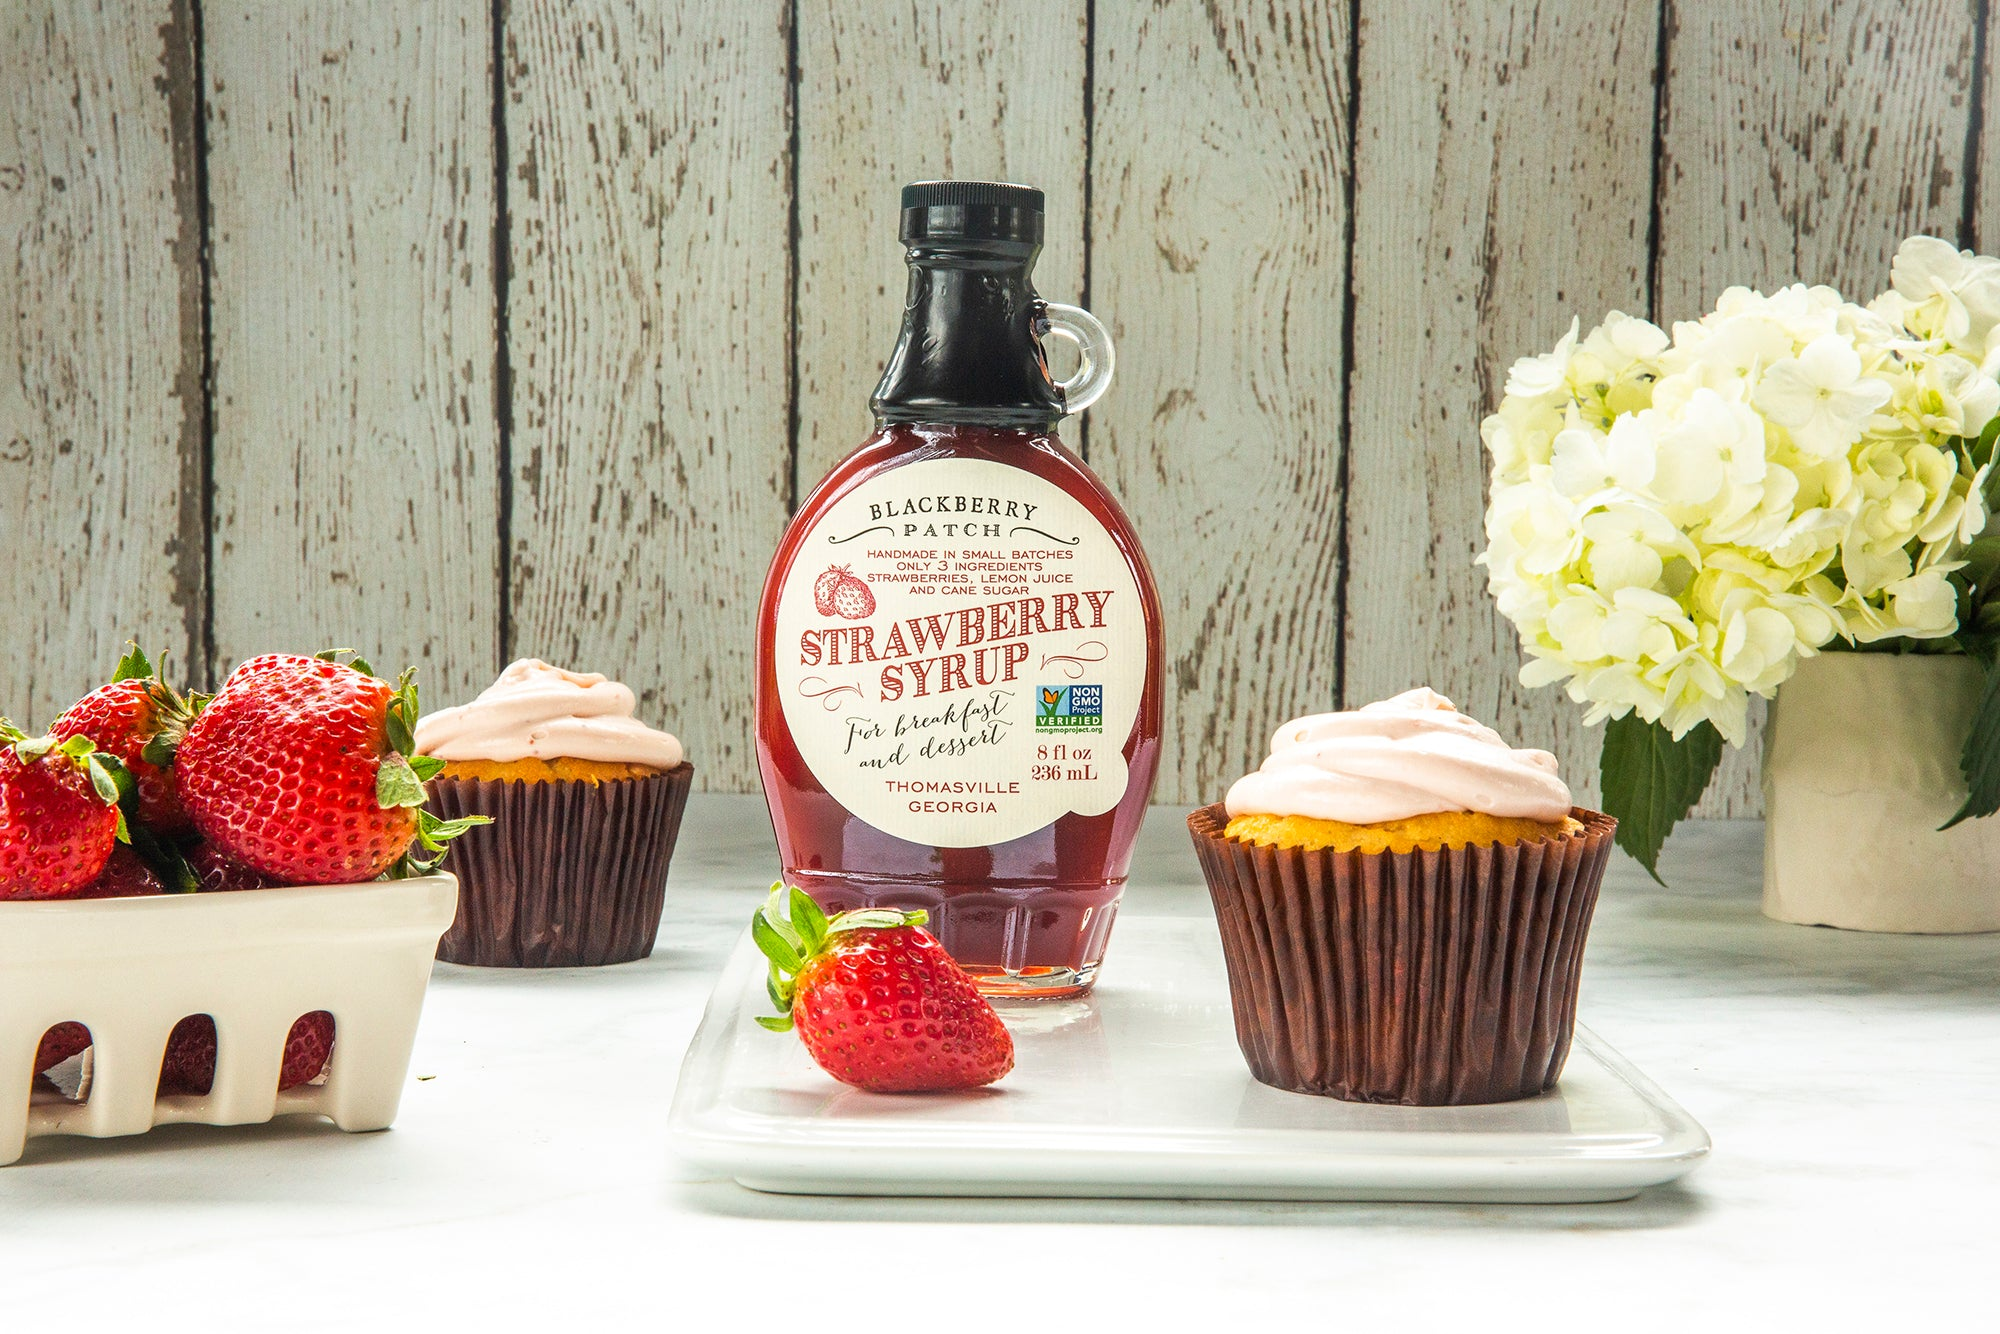 Recipe photo of Strawberry Cream Cheese Frosting using Blackberry Patch Premium Strawberry Syrup